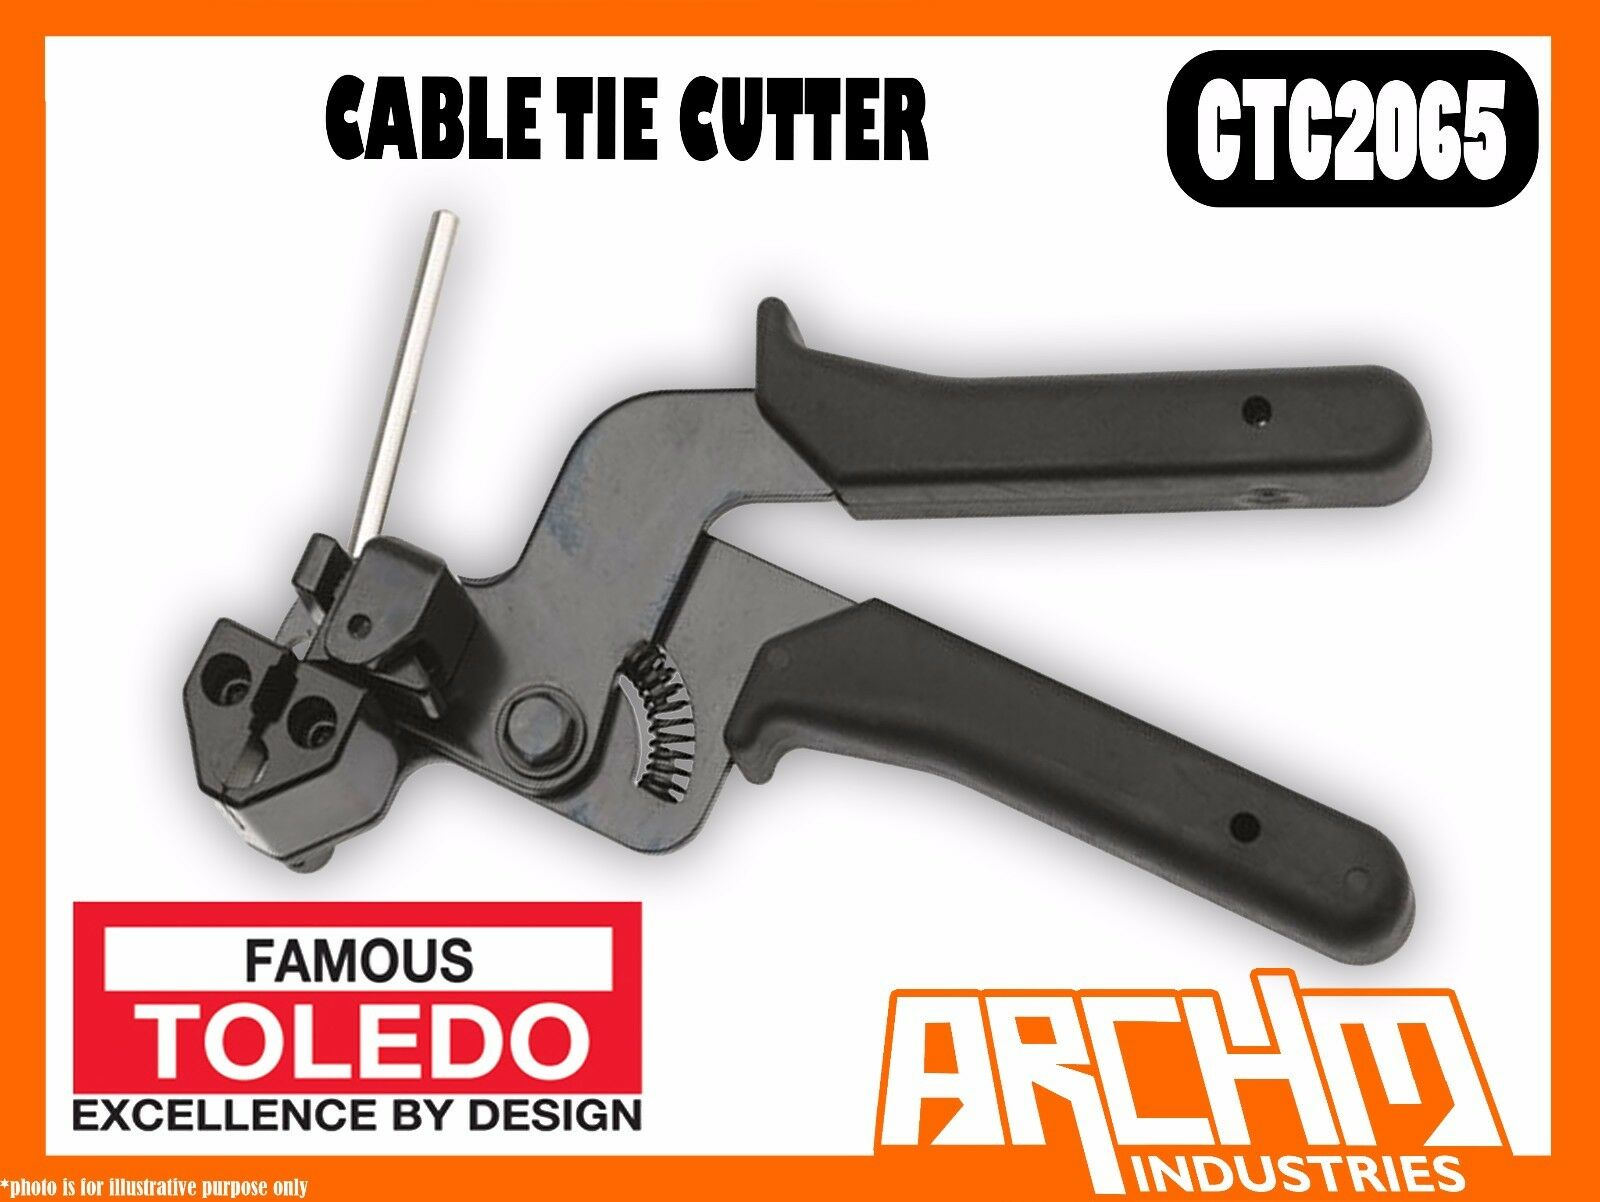 TOLEDO CTC2065 - CABLE TIE CUTTER - METAL CABLE TIES - STAINLESS STEEL